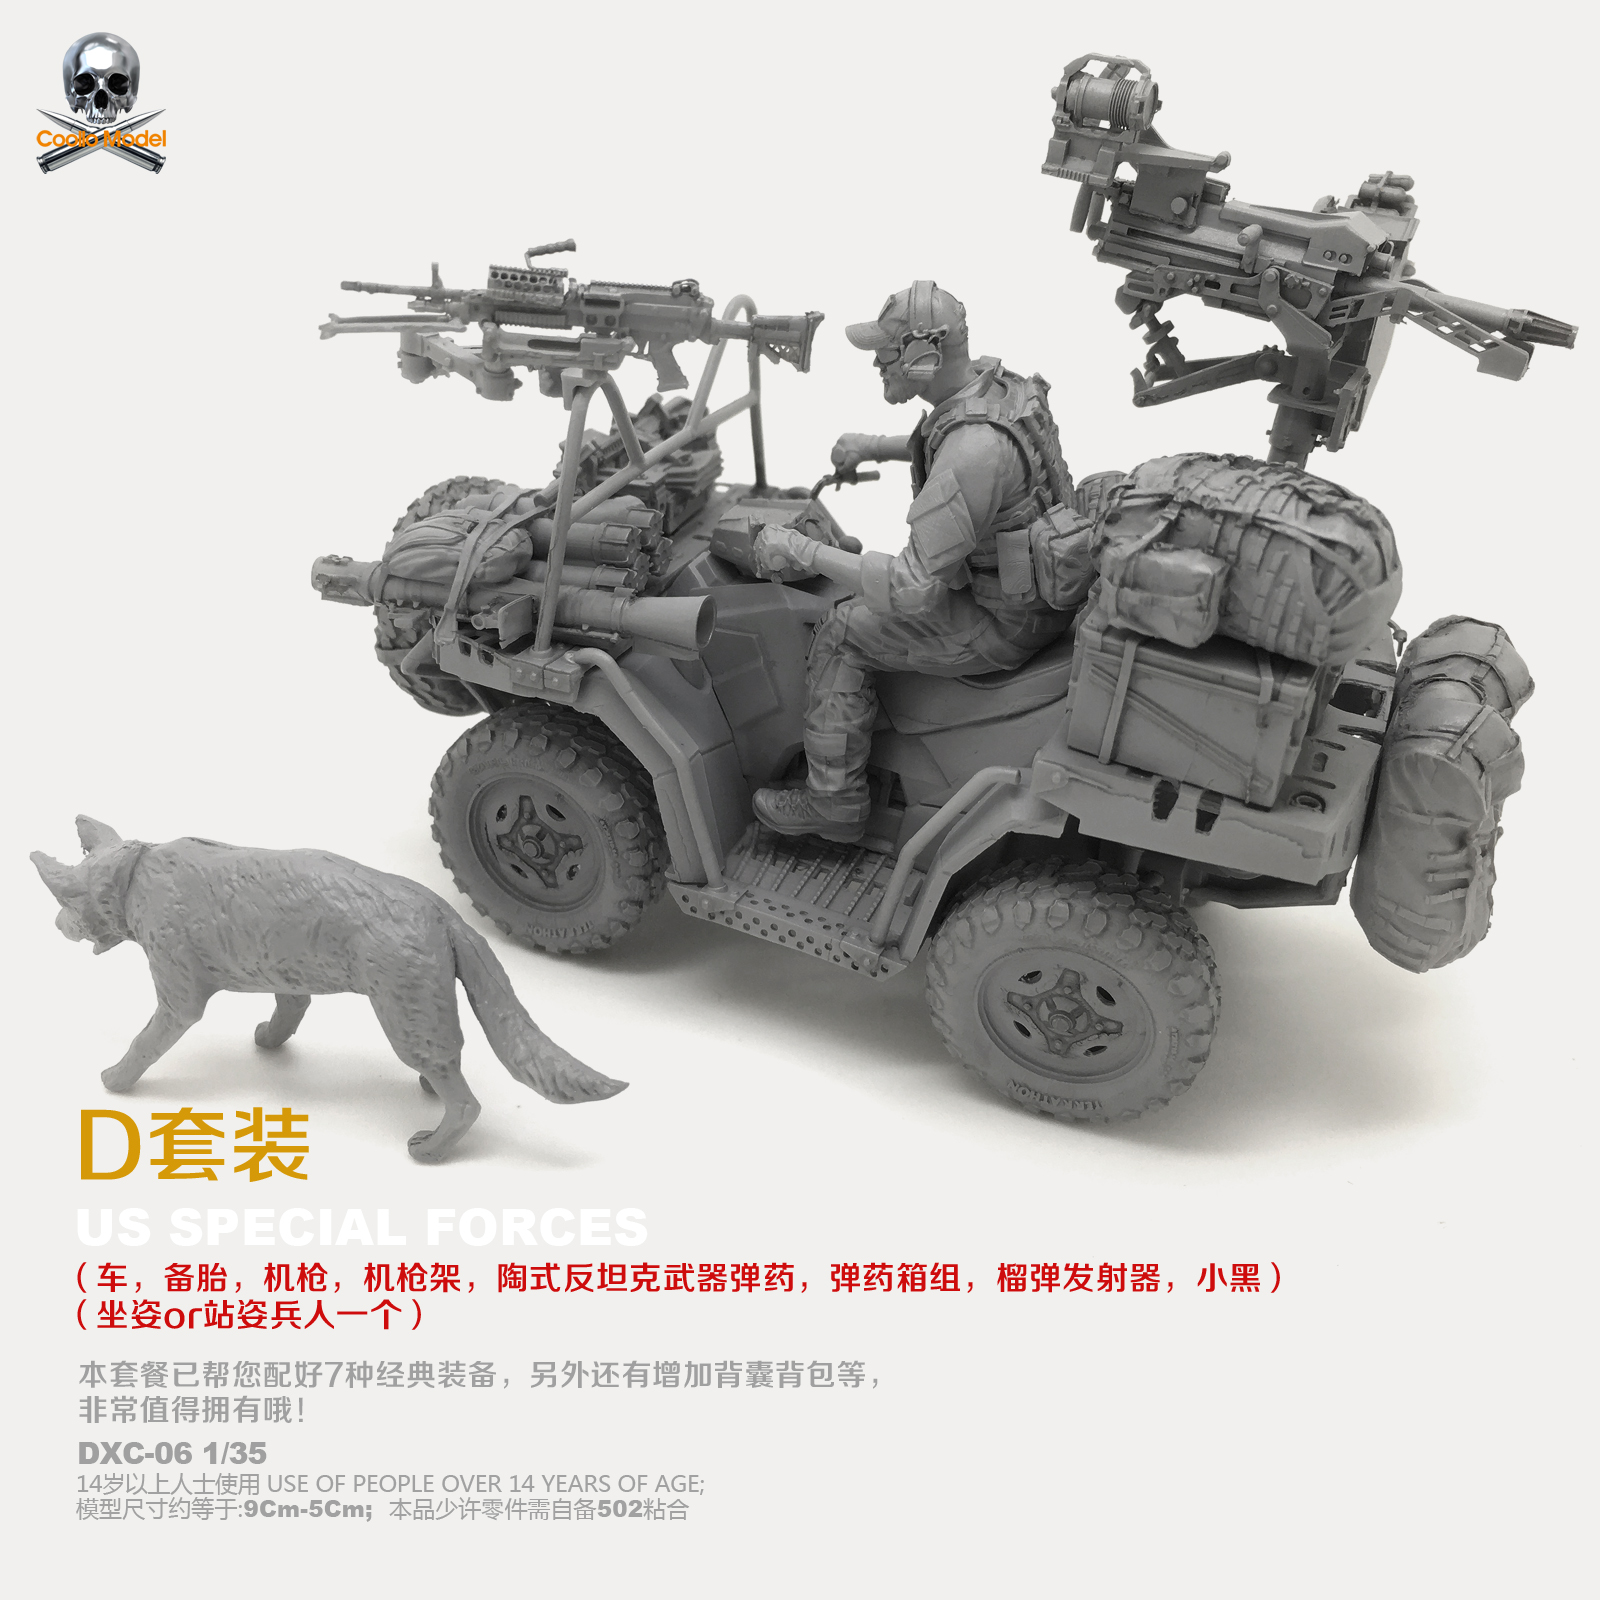 DIY 1/35 Resin Model Dxc - 05 for Us Navy Seal Soldiers and Terrain Vehicles ( D Suit ) цена